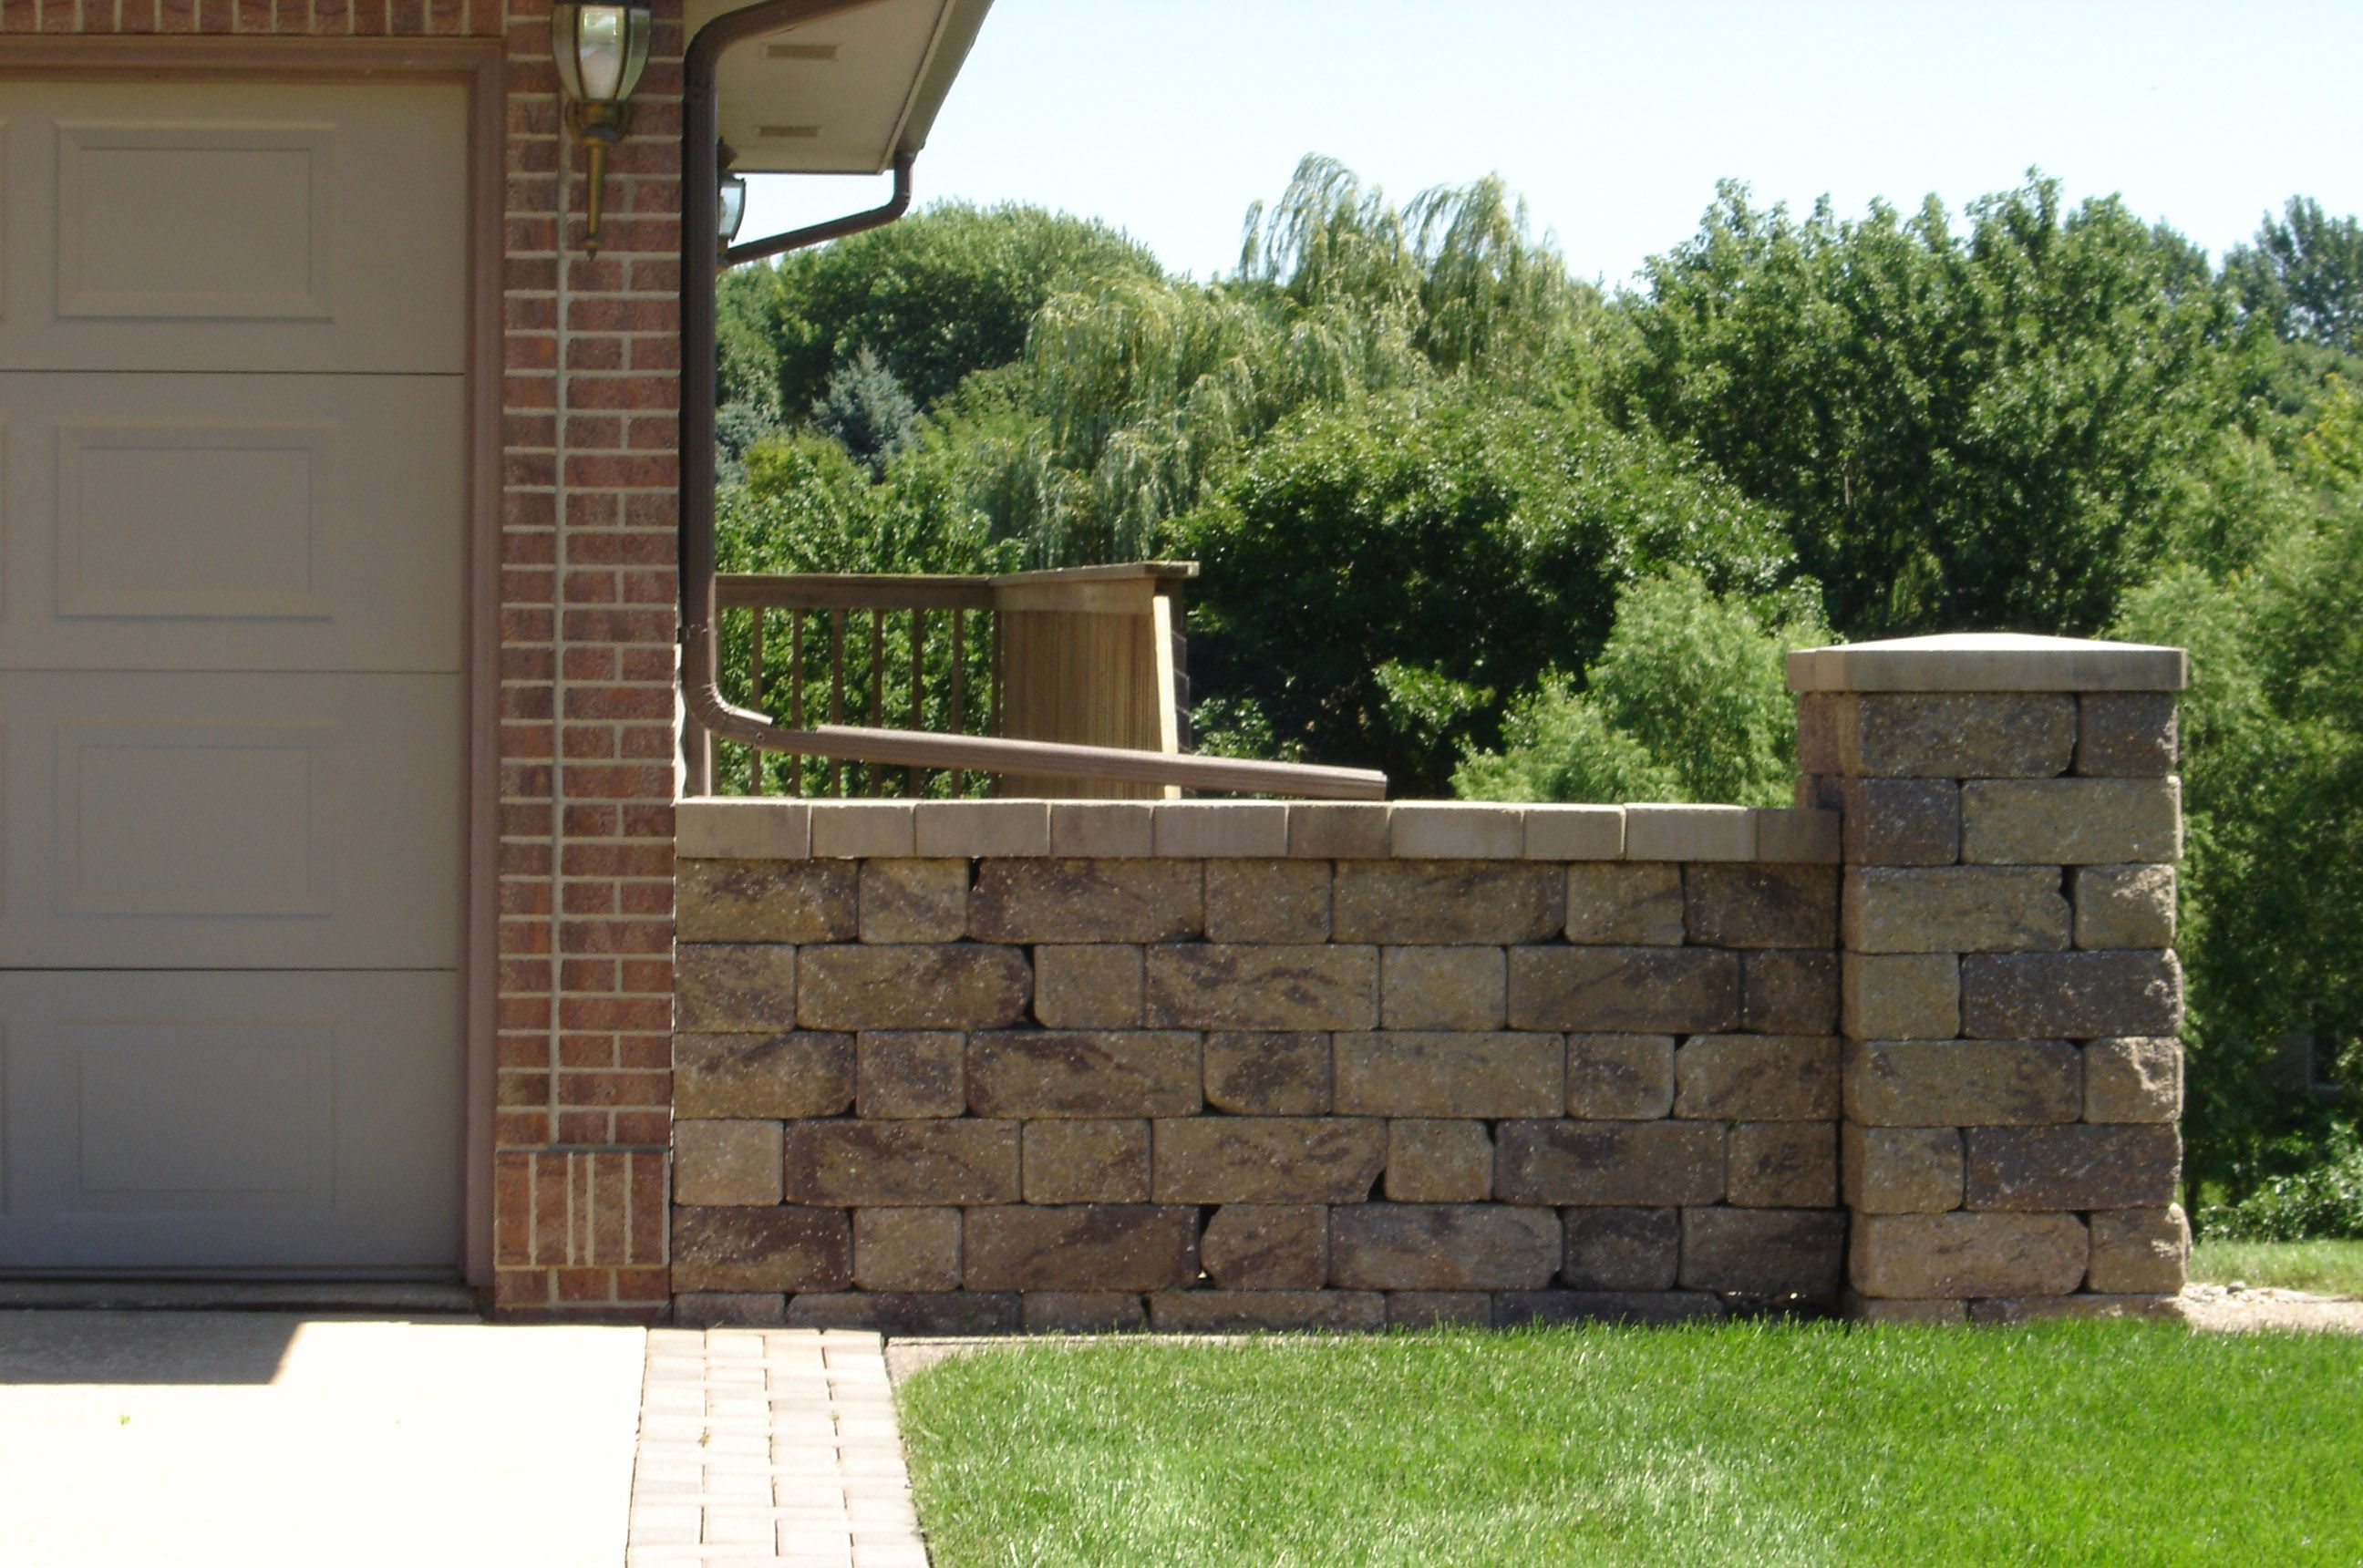 Retaining Wall Interlocking Blocks Block Walls Privacy Fence